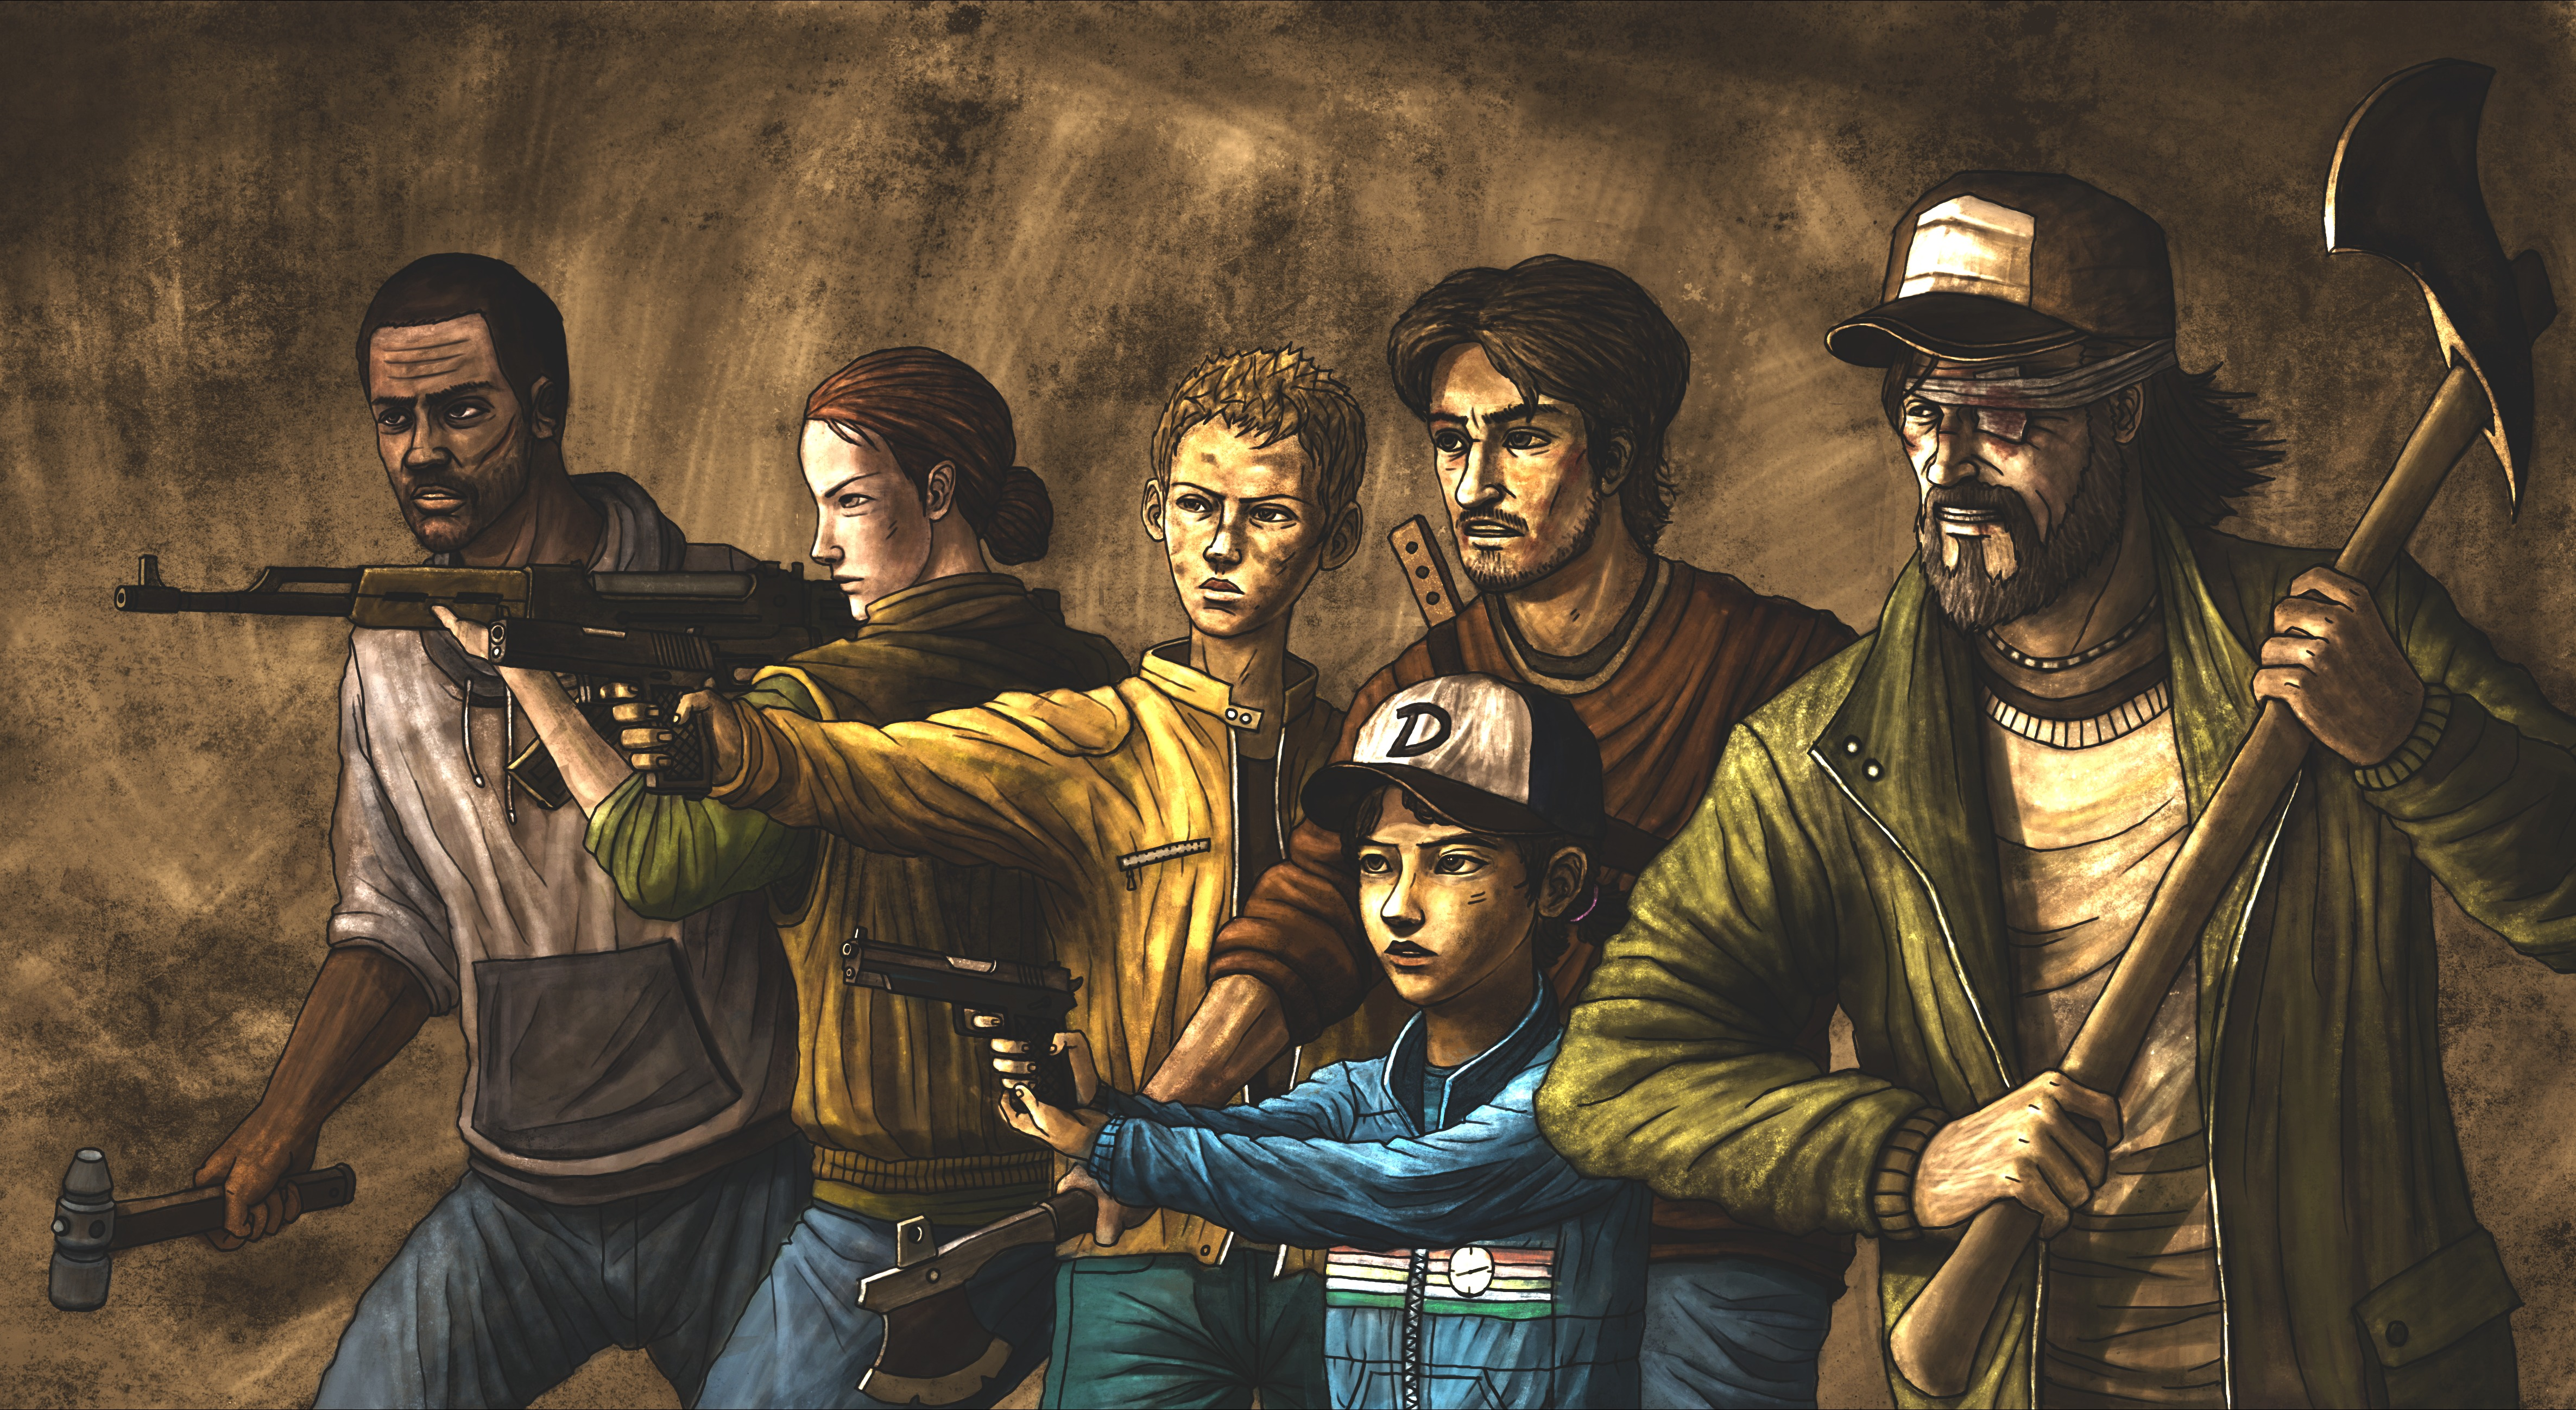 58 Clementine The Walking Dead HD Wallpapers Background Images 4744x2596